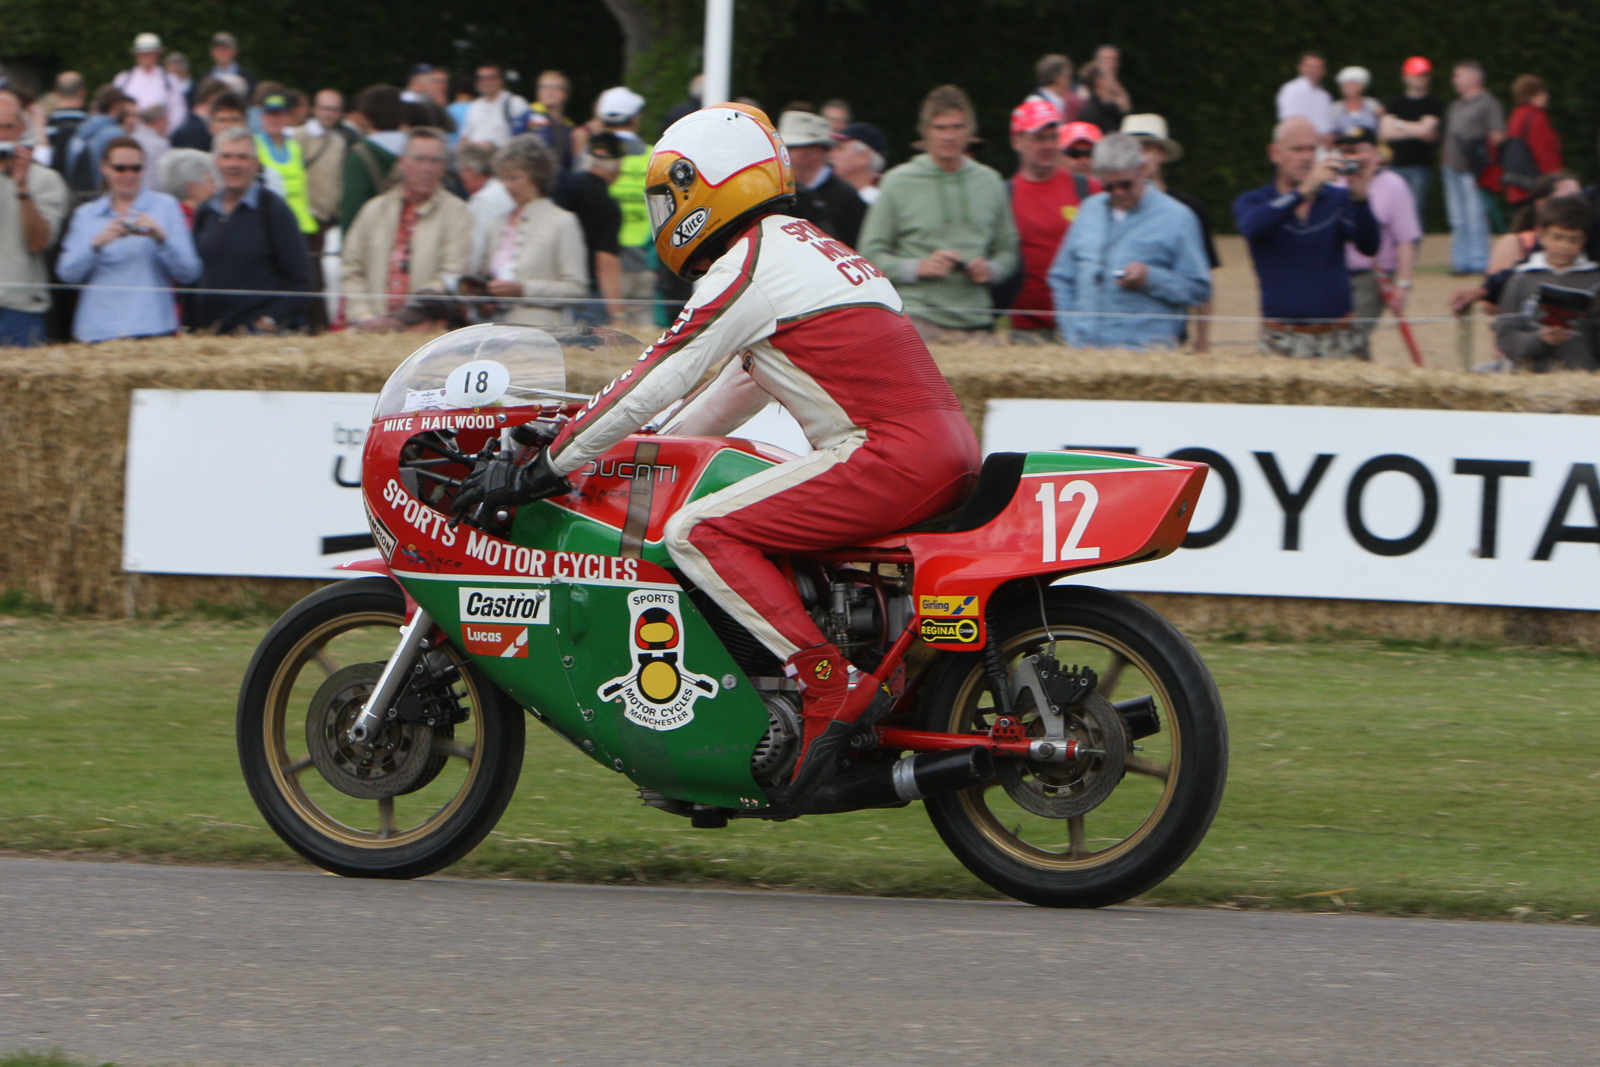 20080711 - Goodwood Festival of Speed -080711 -005